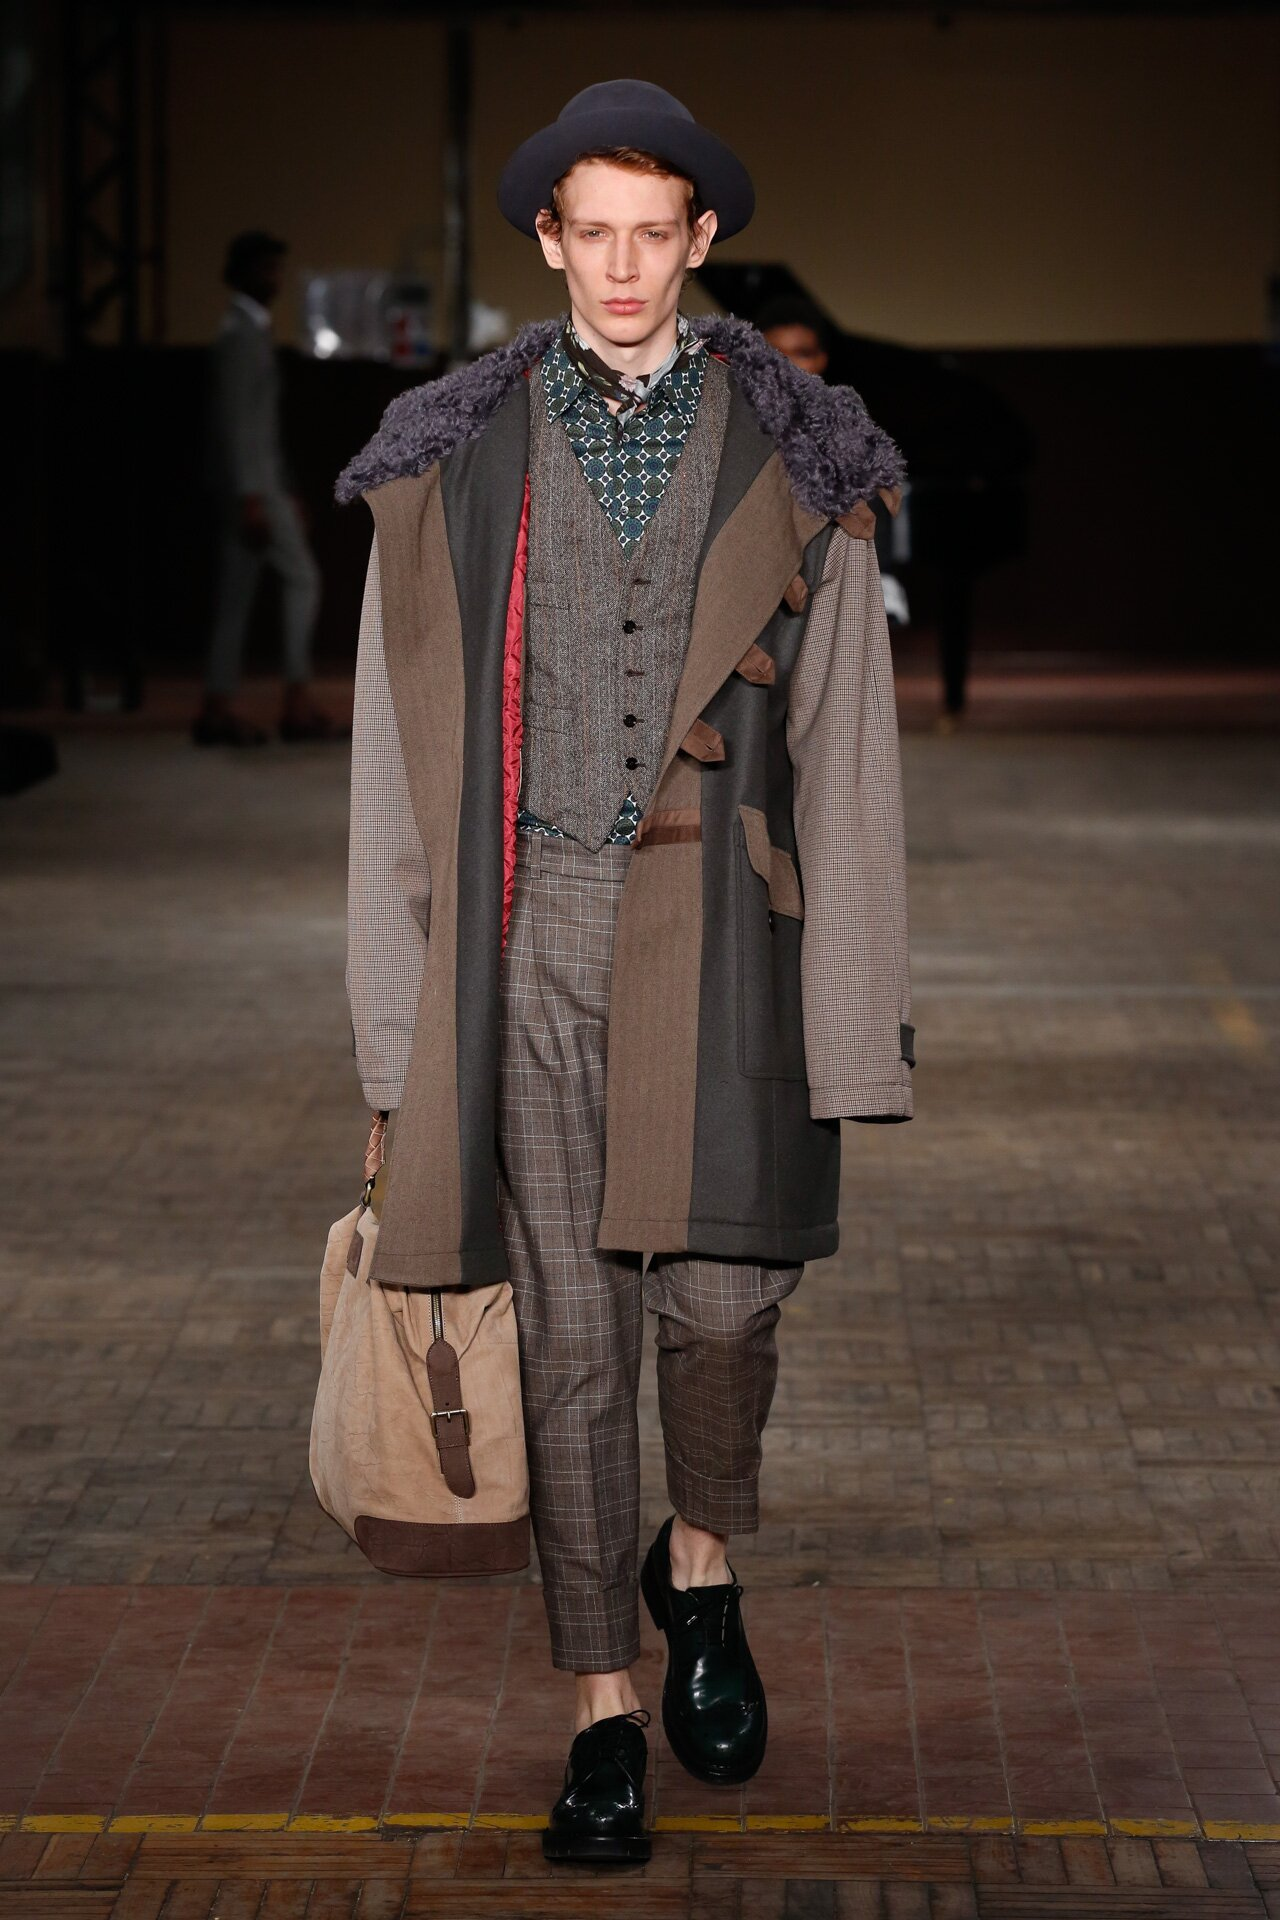 Antonio Marras Fall Winter 2018-19 Fashion Show Look 26